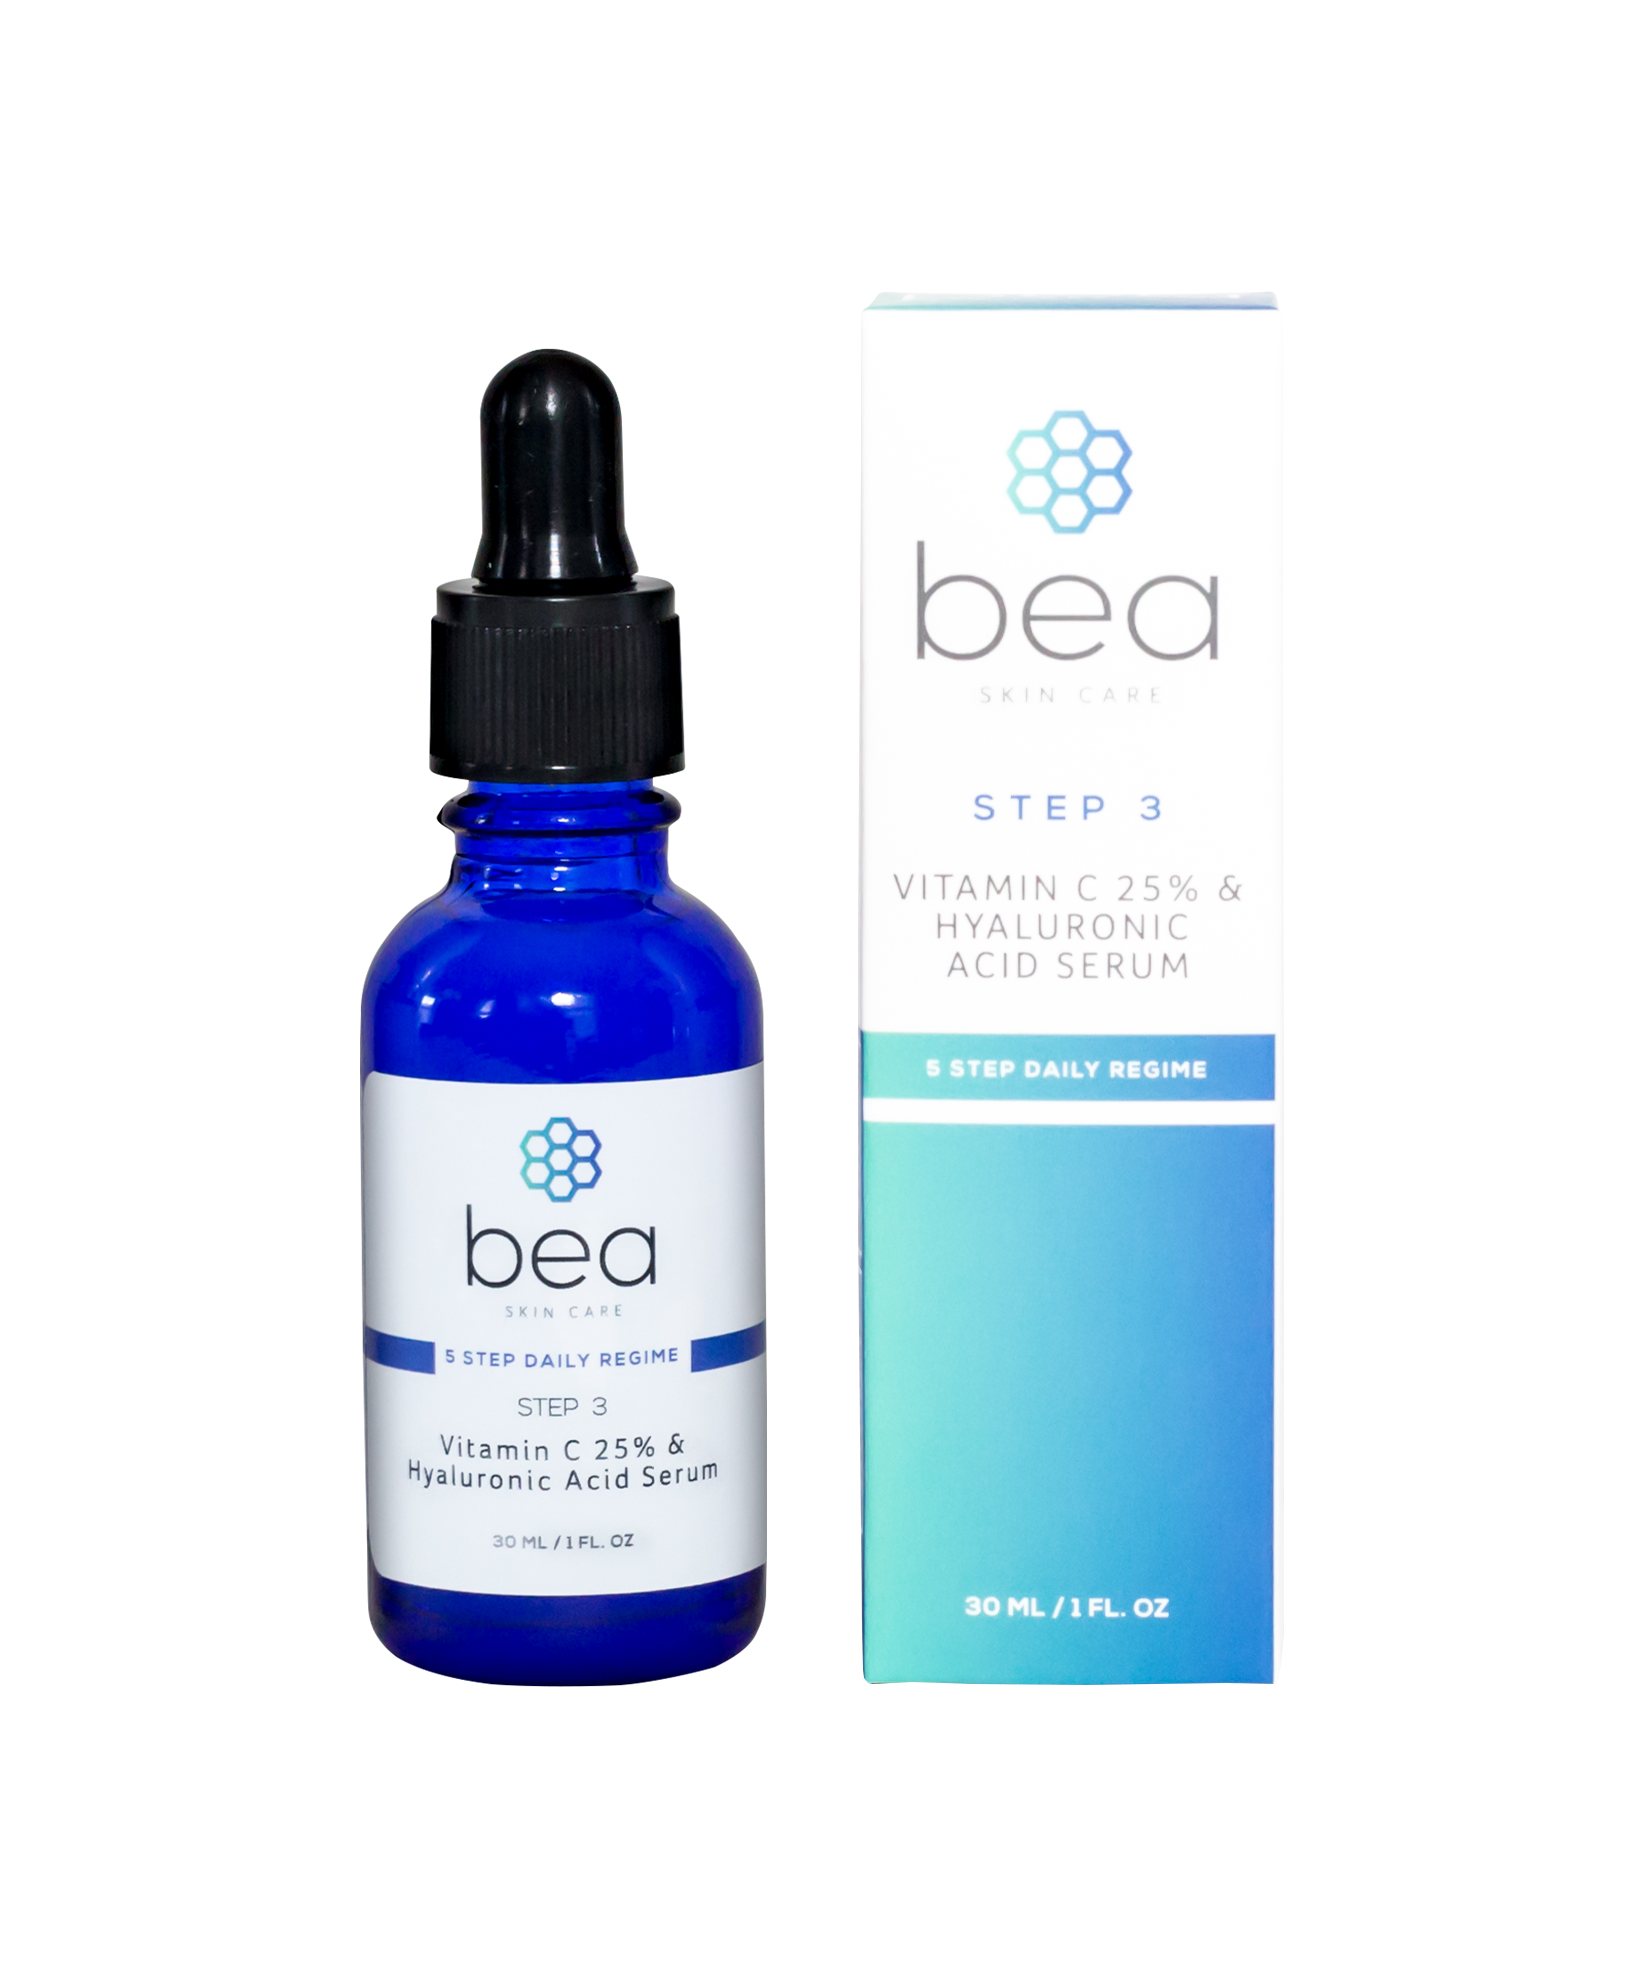 STEP 3: Vitamin C 25% & Hyaluronic Acid Serum – 30 ML Face Serum bea Skin Care